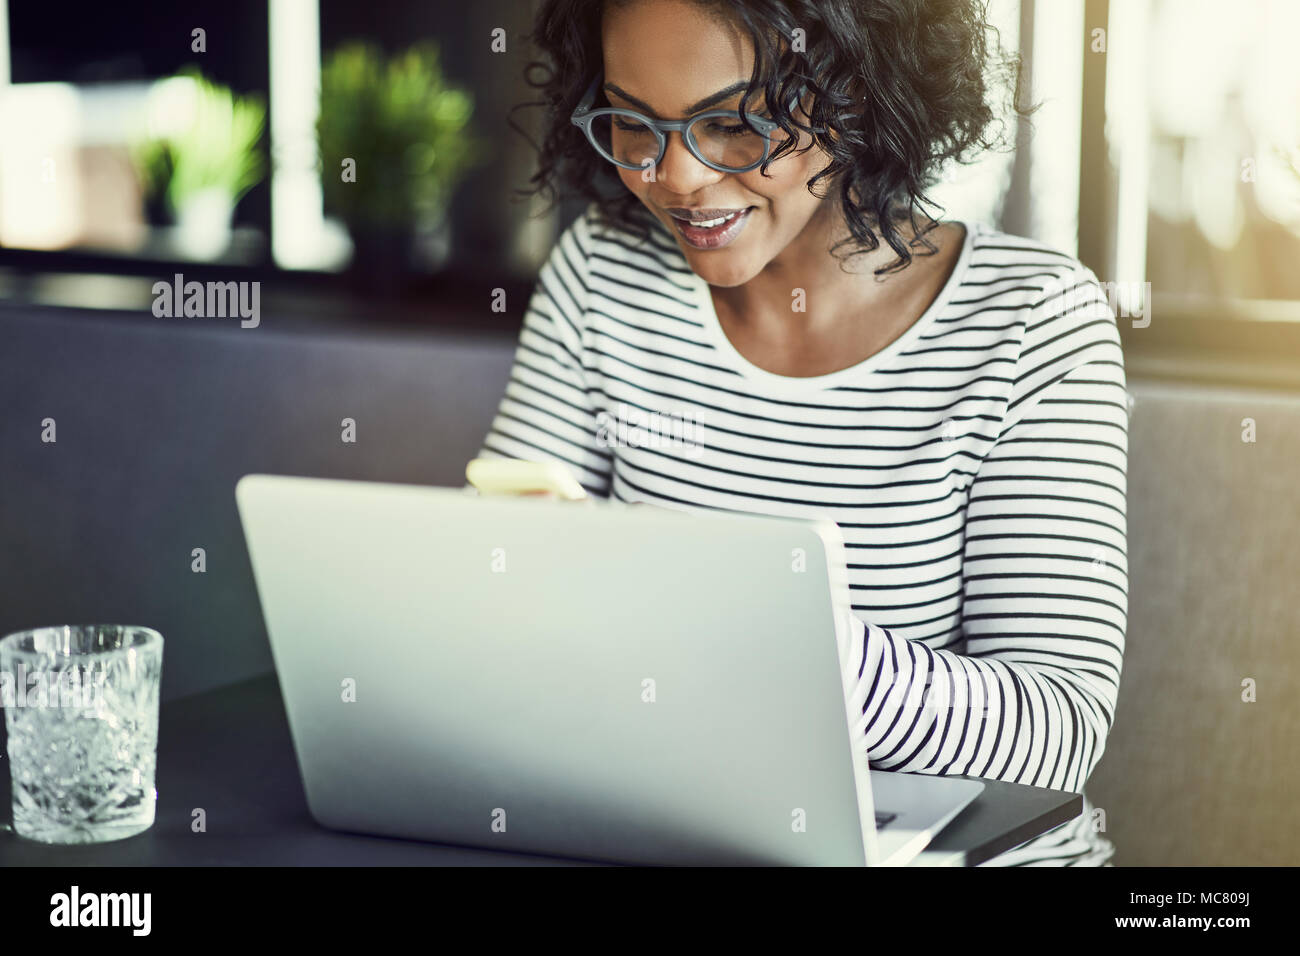 Smiling young African woman wearing glasses sitting at a table sending a text message on her cellphone and working online with a laptop - Stock Image